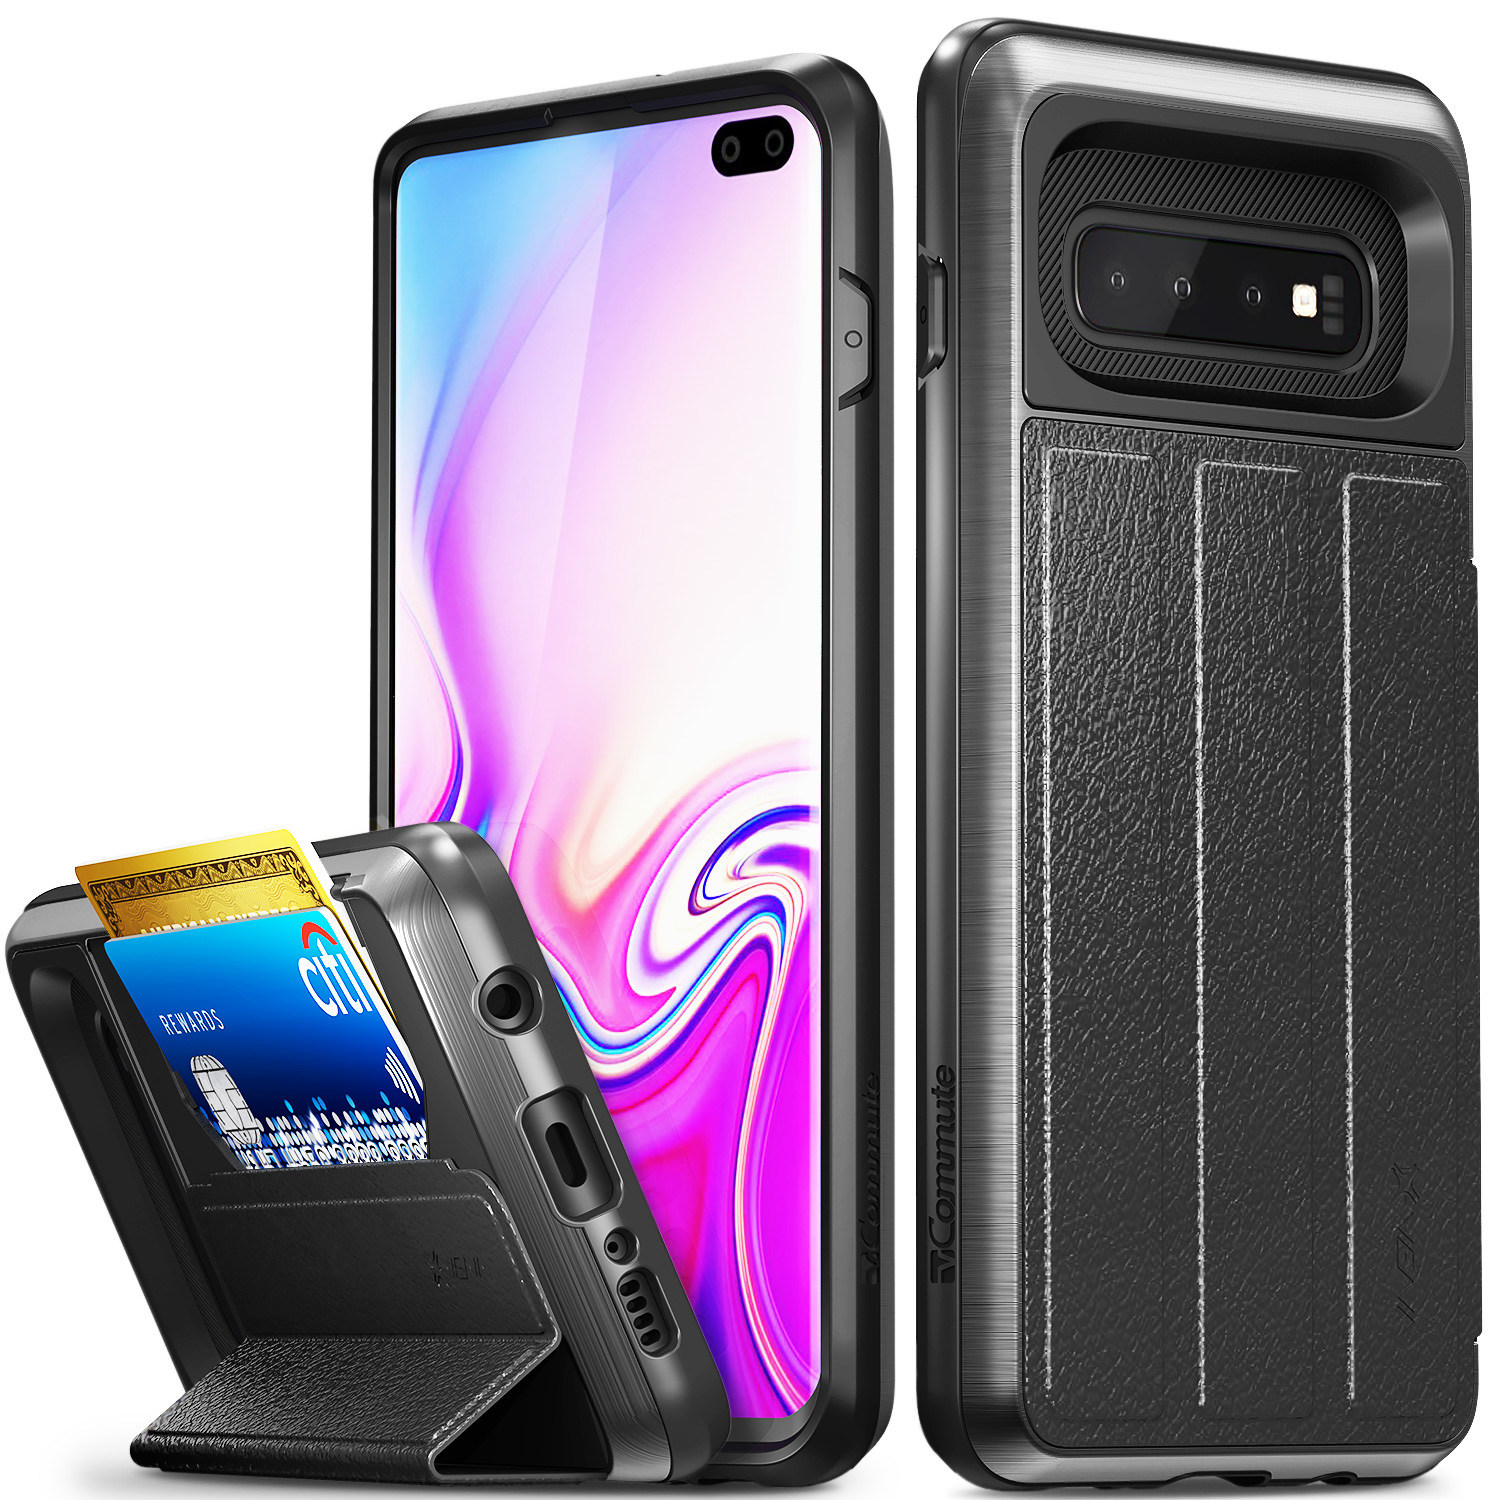 An Array Of New Samsung Galaxy Cases From Vena To Keep Your Phones